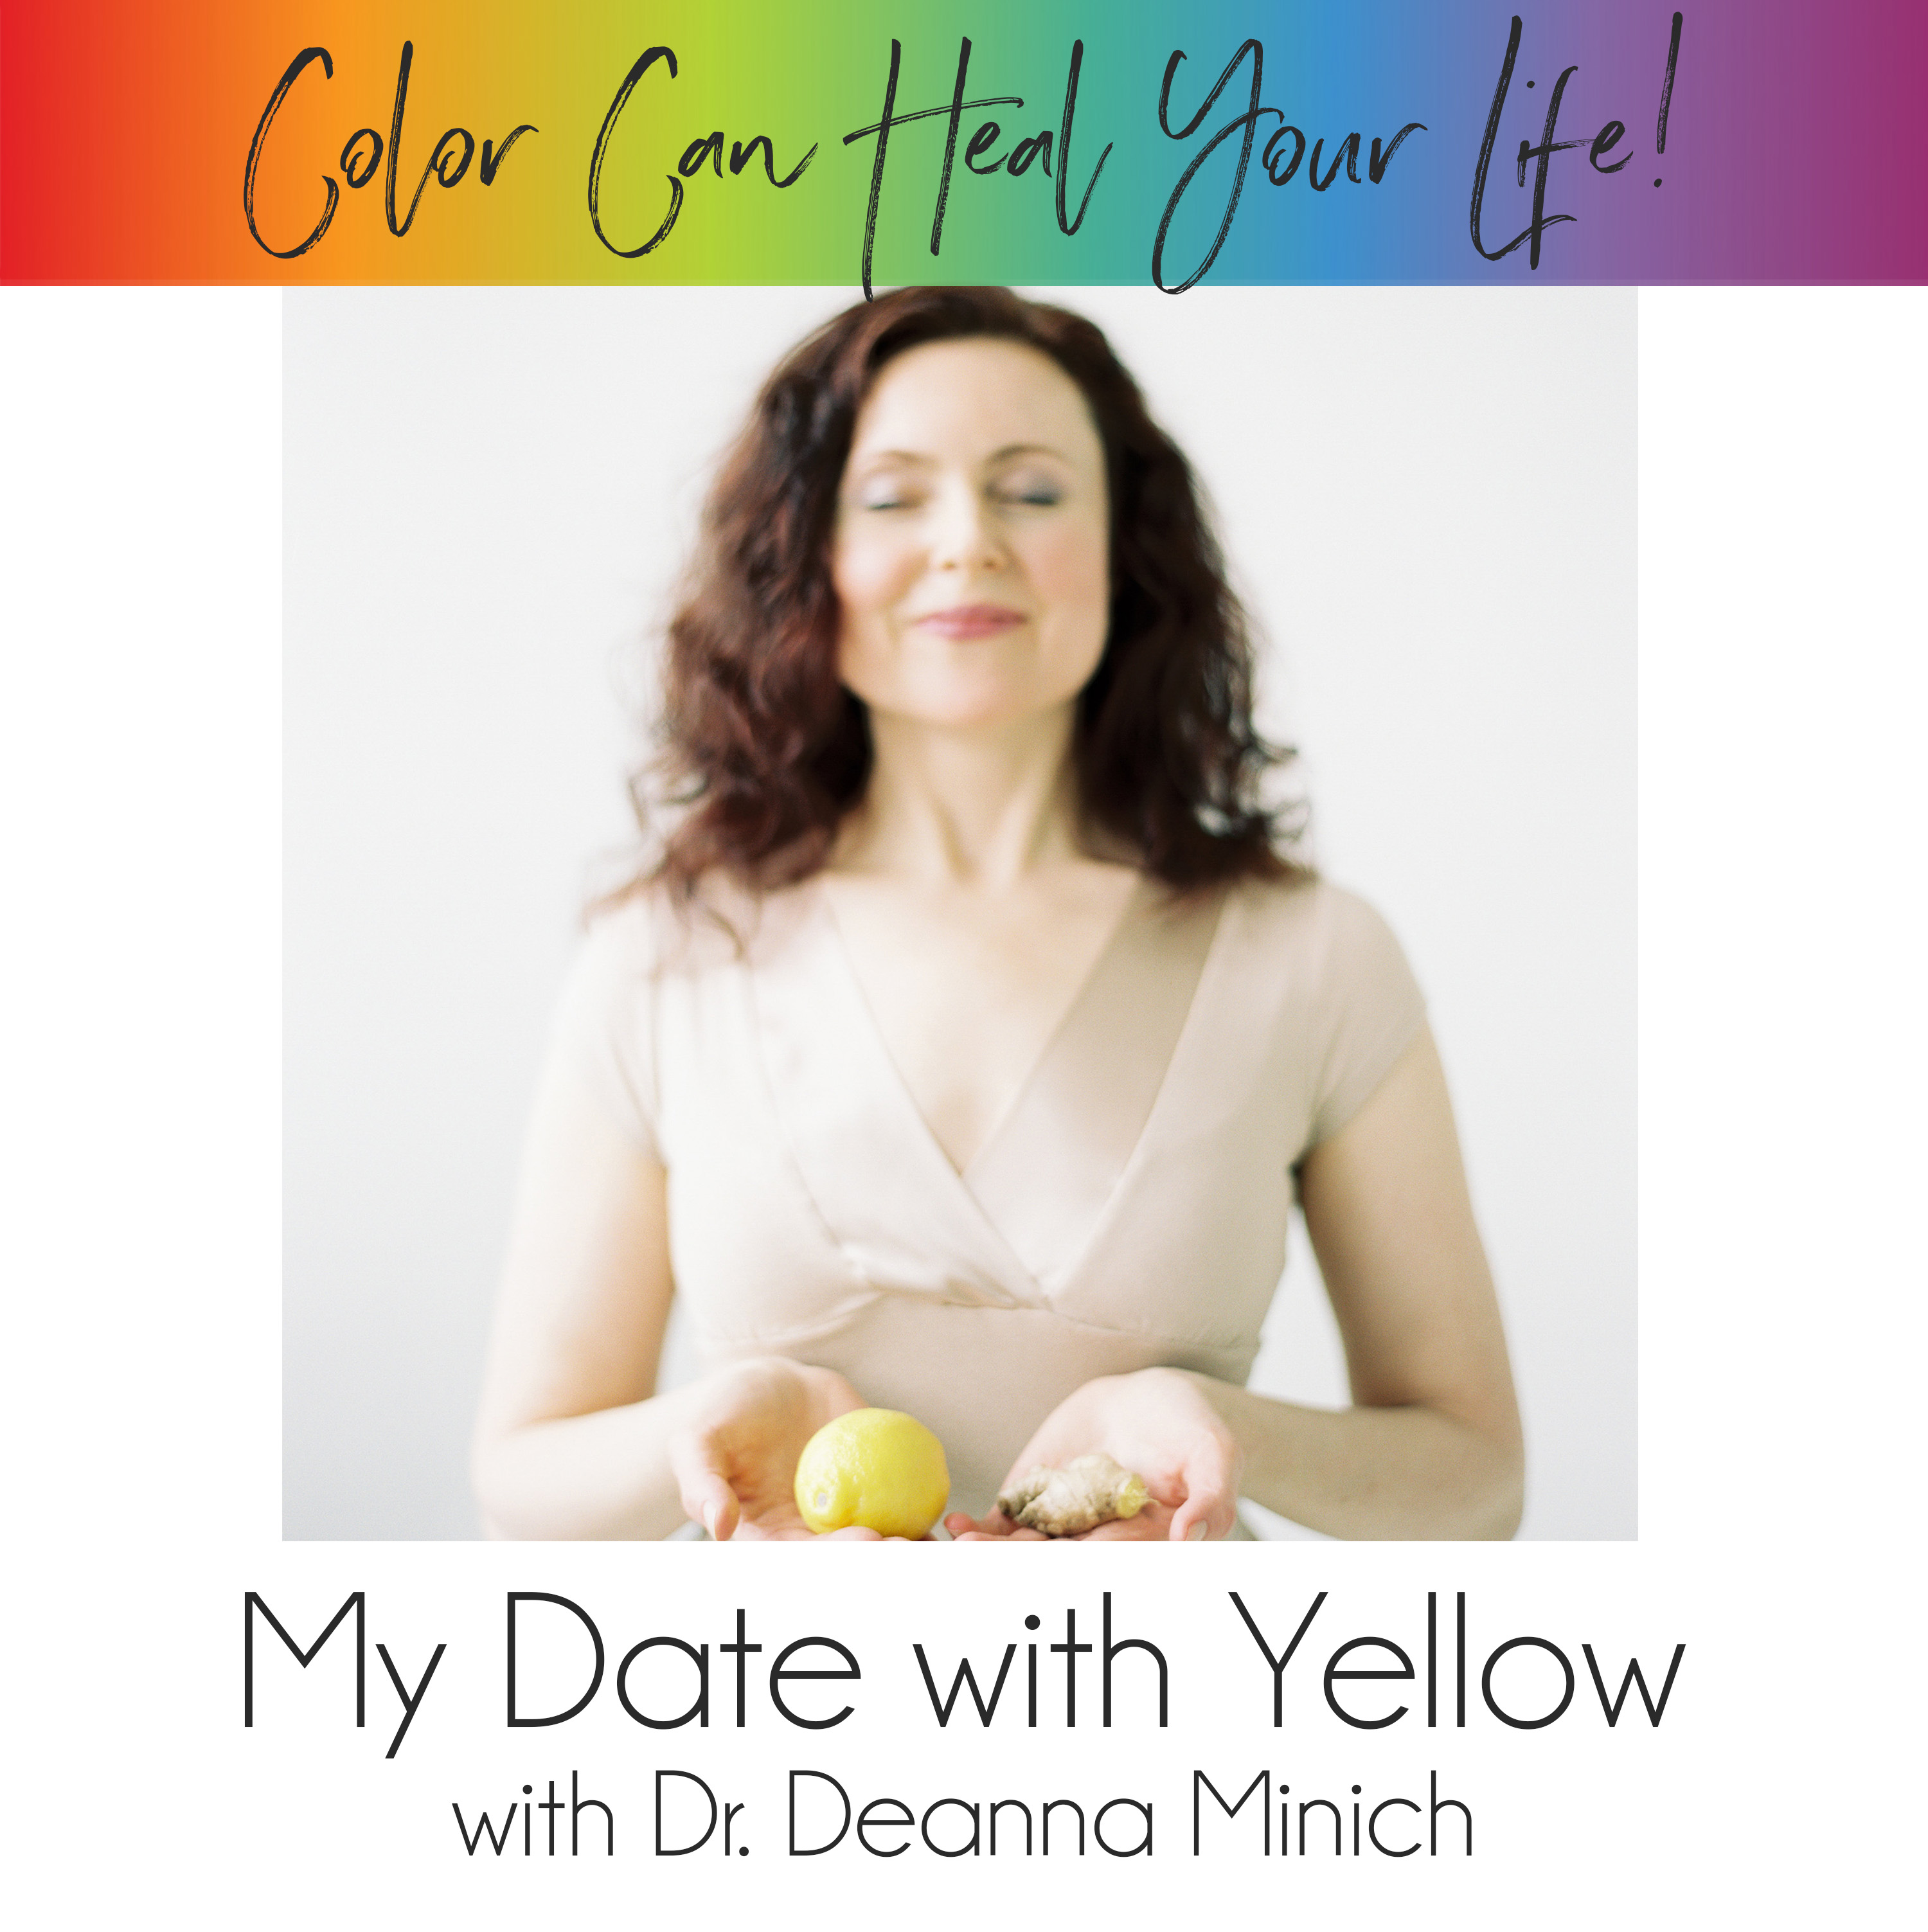 3: My Date with Yellow